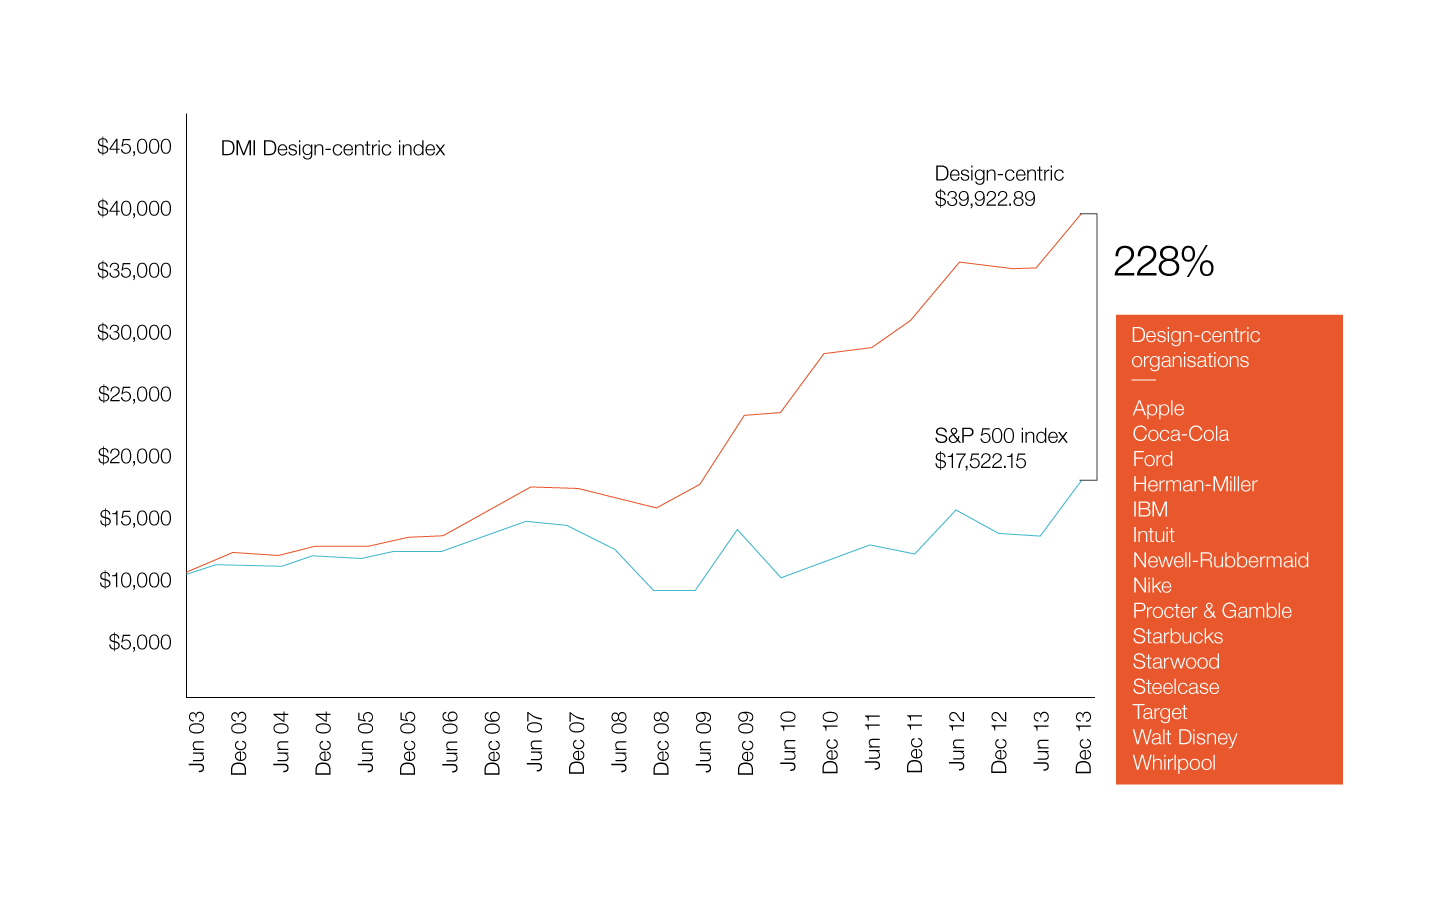 Growth of design-centric companies compared to the S&P 500